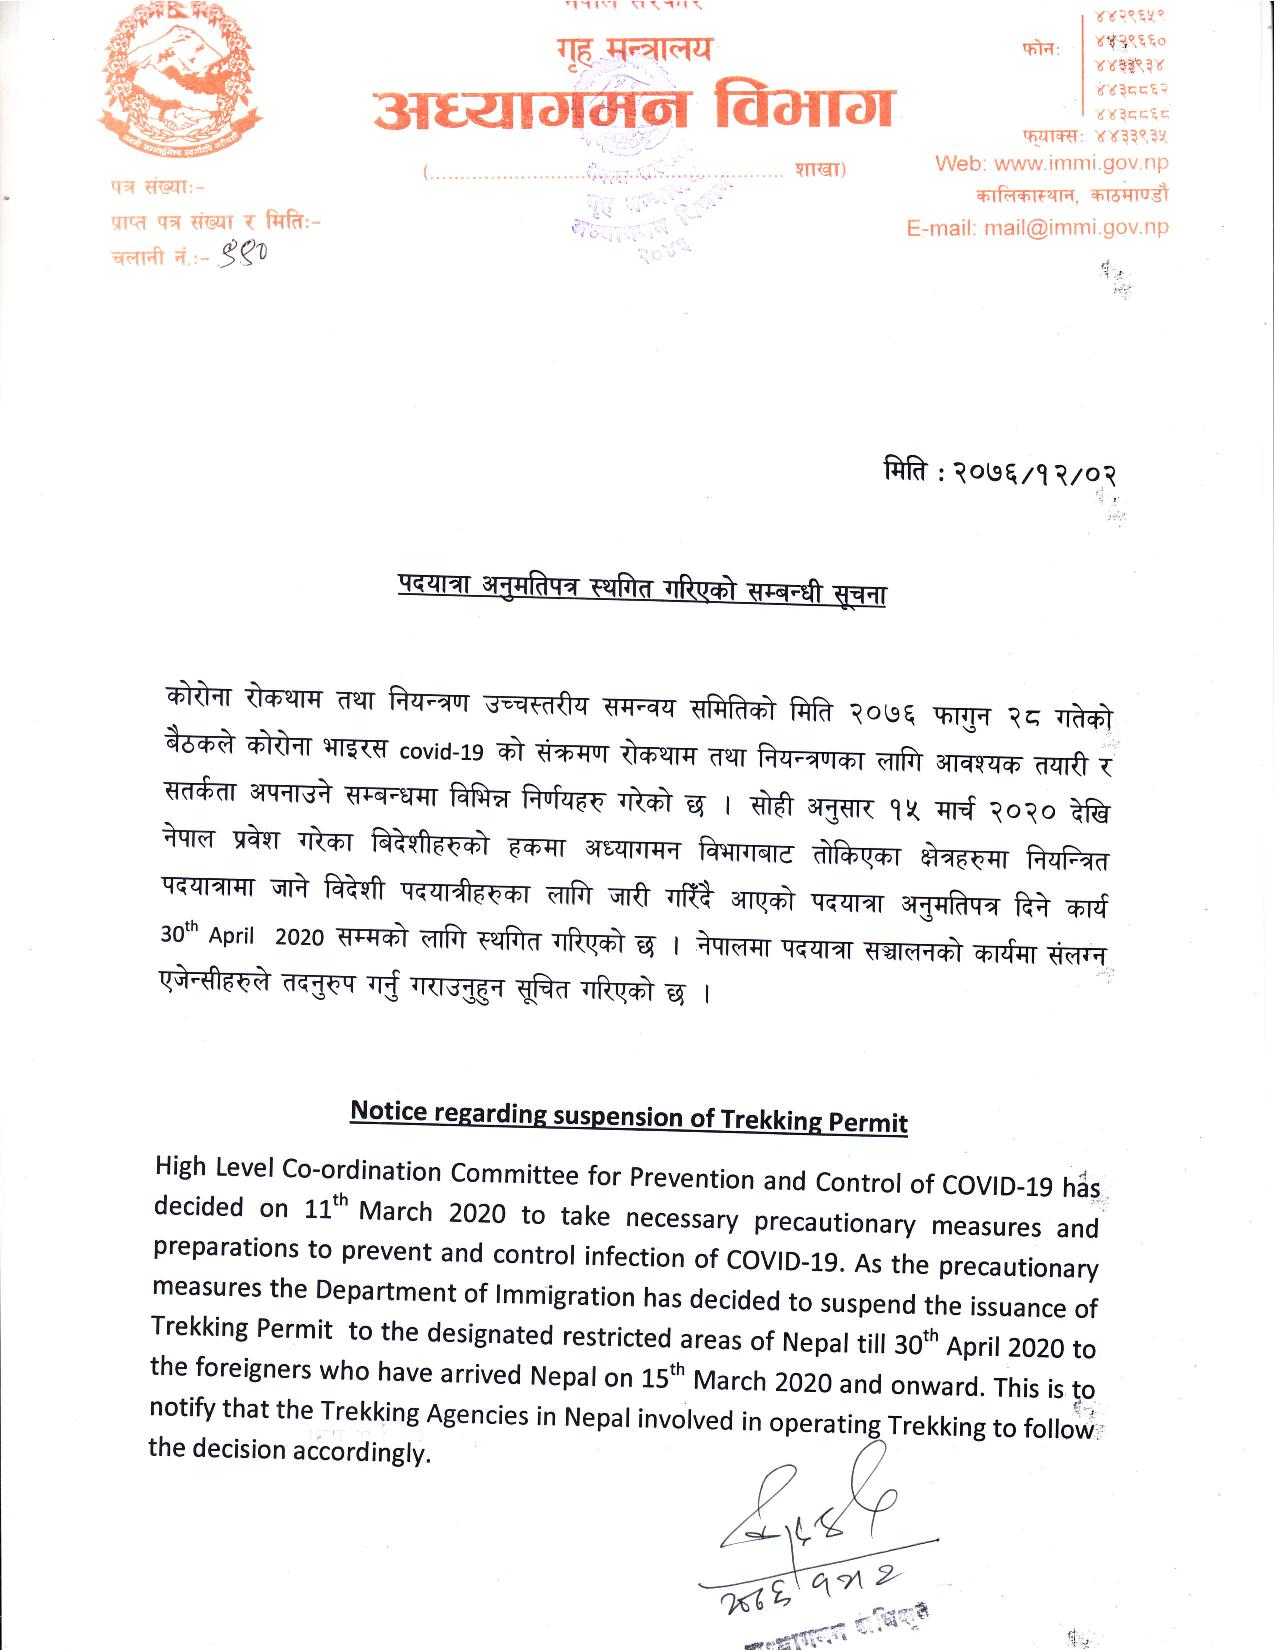 Controlled Area trekking permit suspended till 30th April 2020